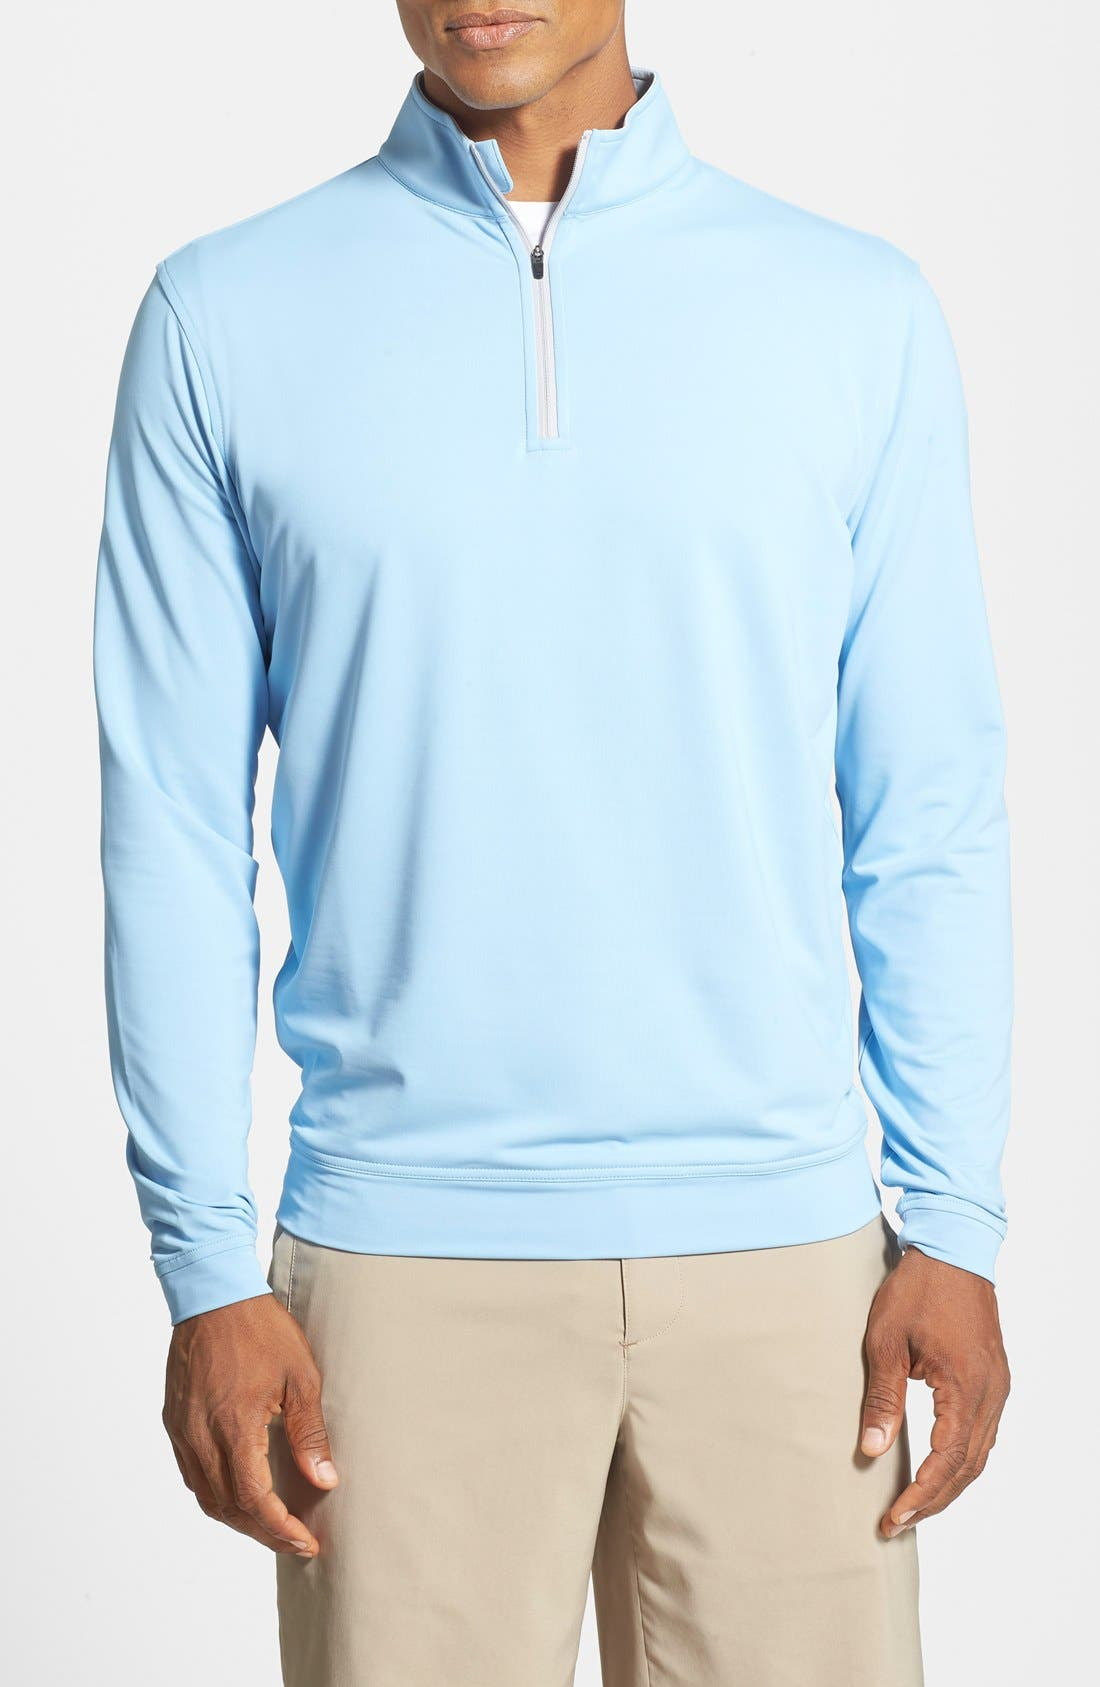 Peter Millar 'Perth' Quarter Zip Pullover